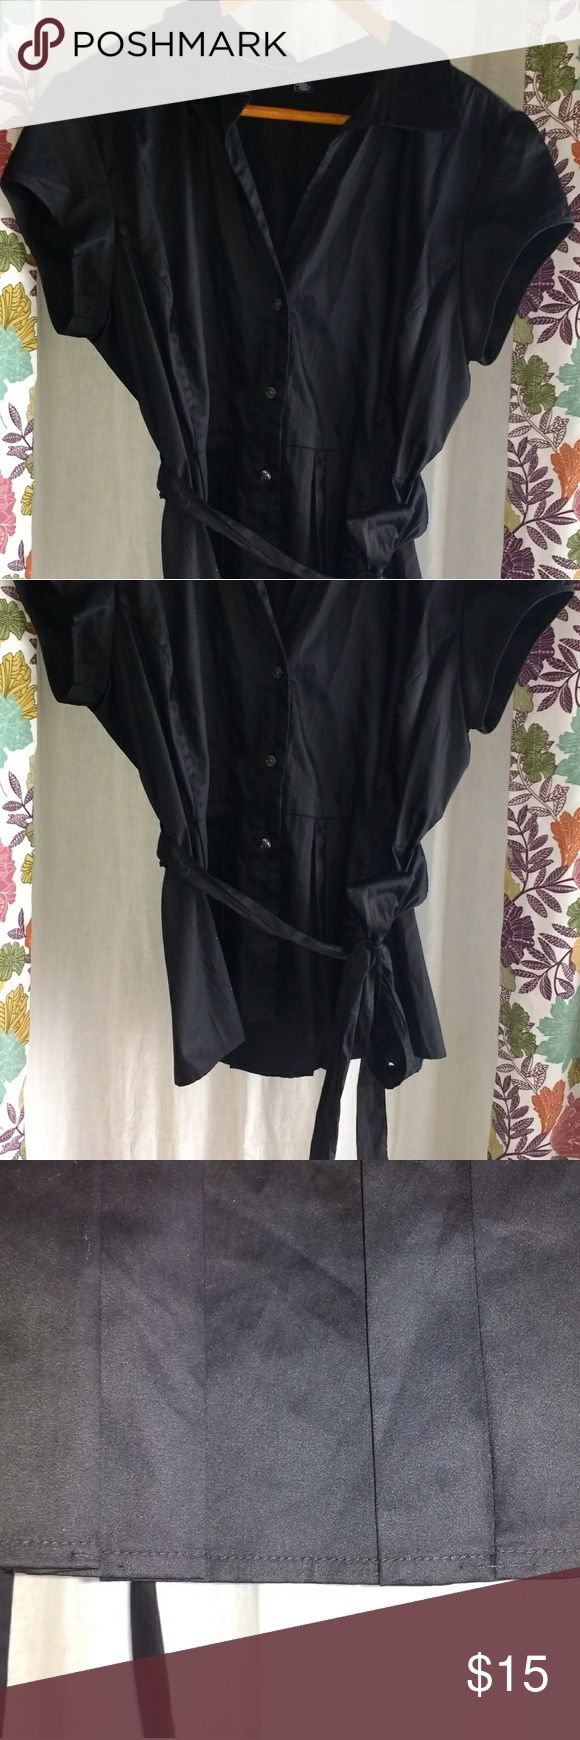 Tommy Hilfiger Black button down Peplum Top LG Tommy Hilfiger Black button down Peplum Top LG  Top is in like new condition. Threads that release the pleats have not been cut.  Thanks for looking!! Item is preowned and sold as-is, no refunds. Please review photos carefully. Please feel free to ask questions! Tommy Hilfiger Tops Button Down Shirts